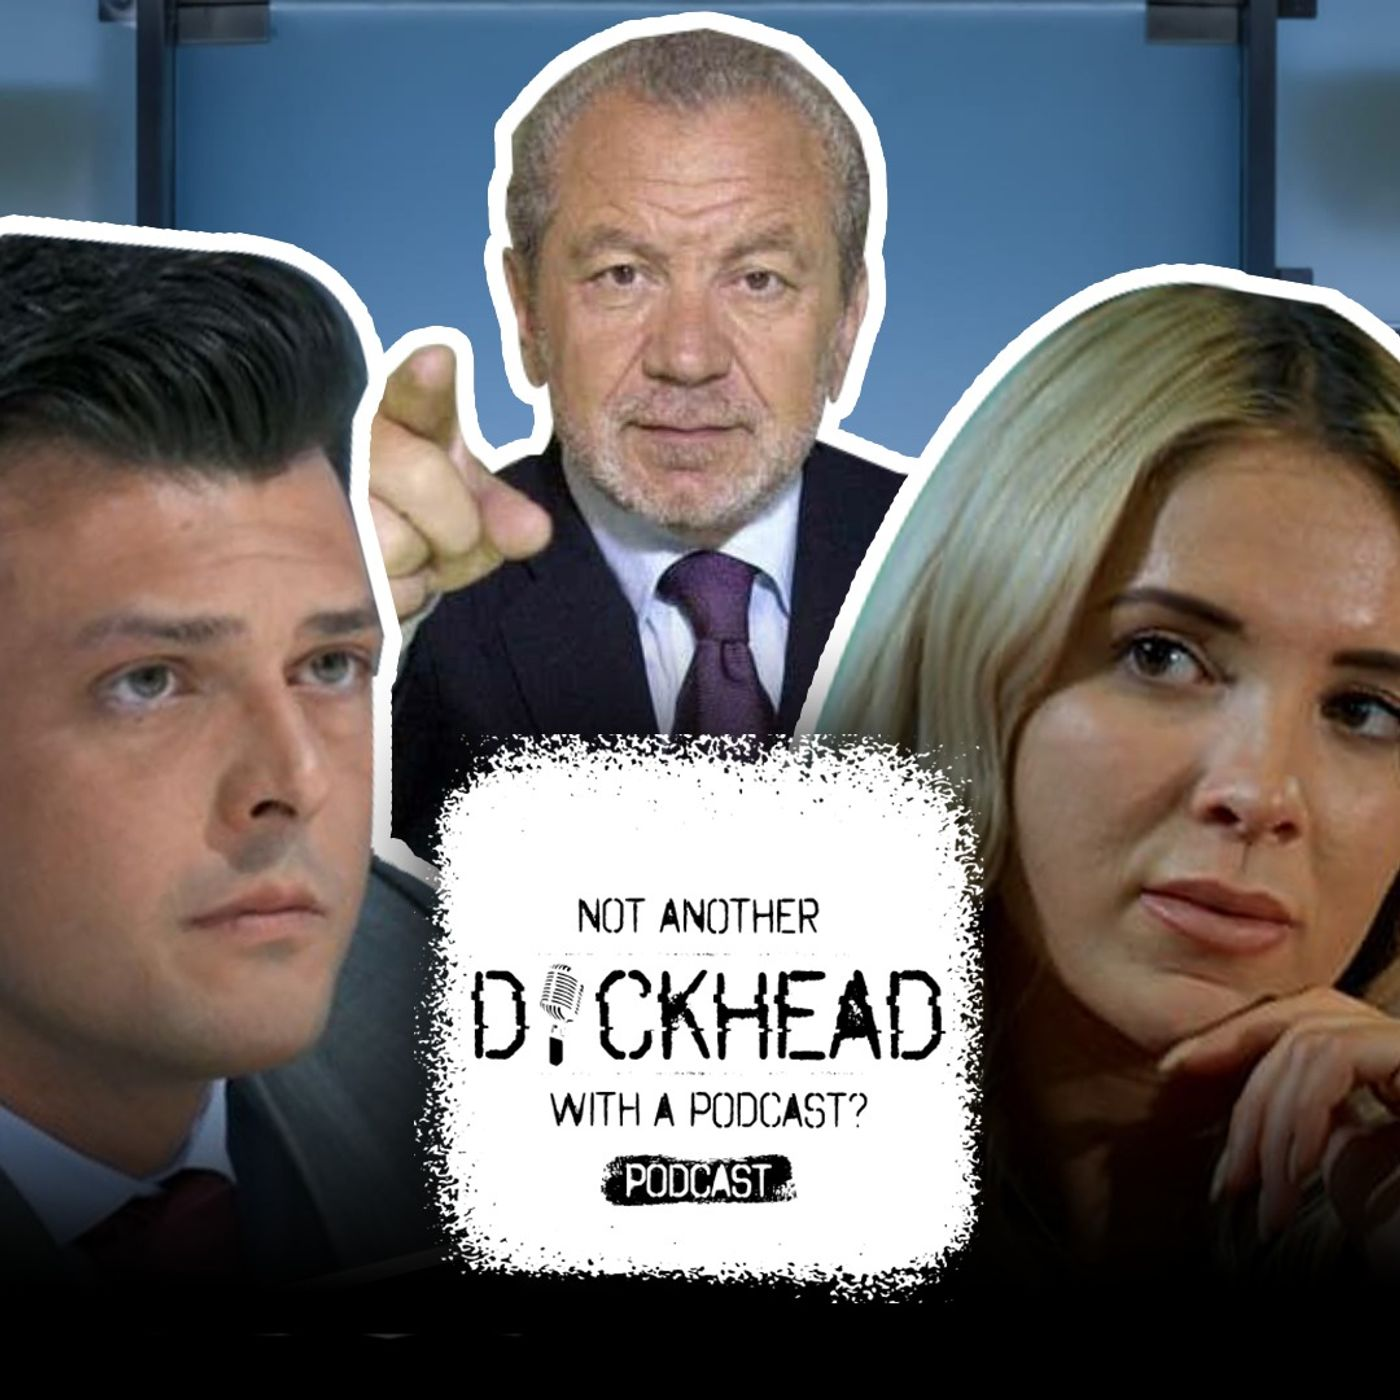 What is it really like on the Apprentice? ן Not Another D*ckhead with a Podcast #13